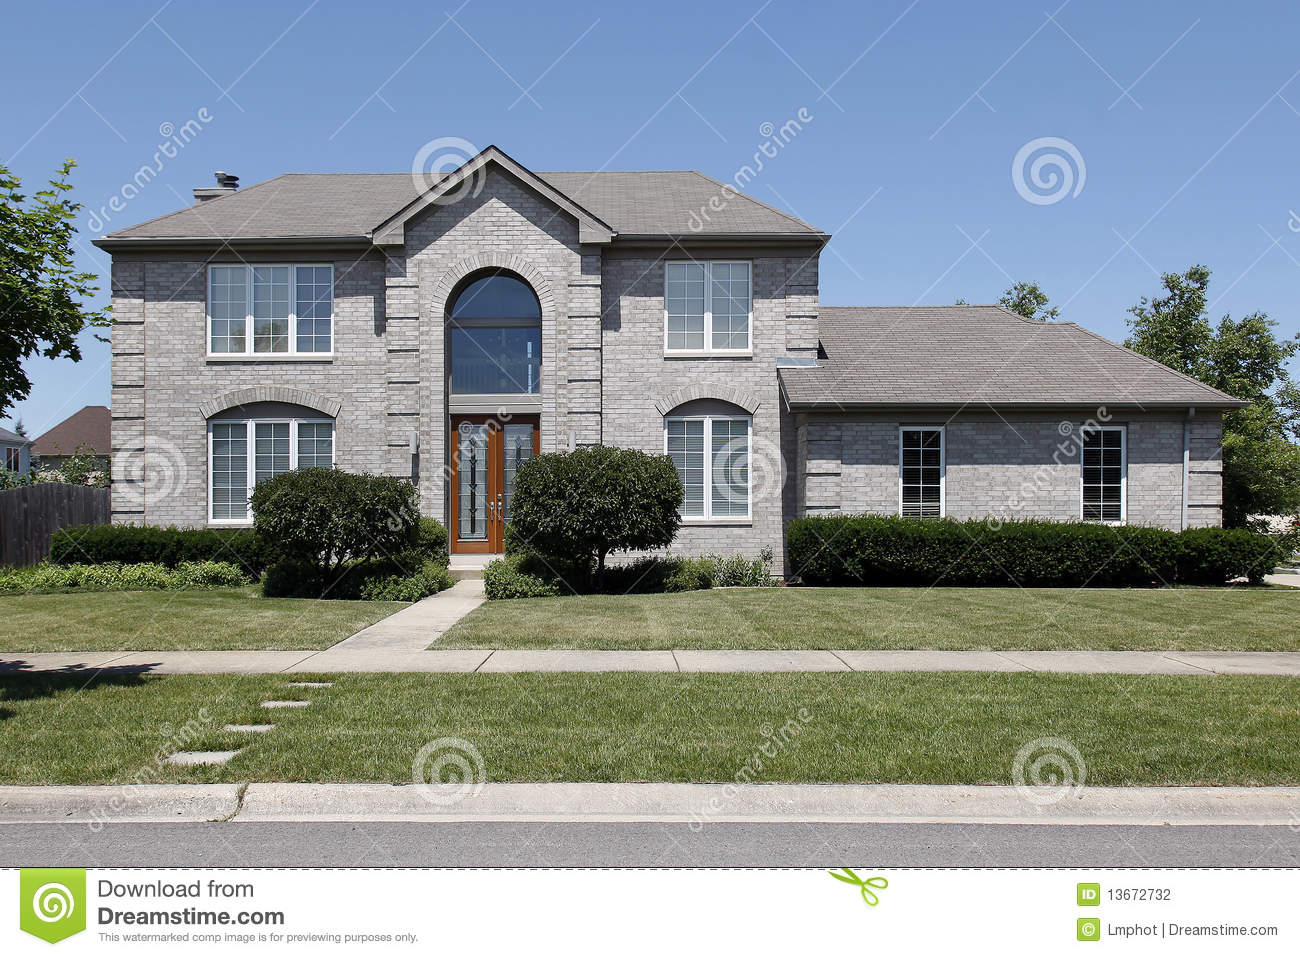 Gray Brick Home With Glass Door Stock Photography - Image: 13672732